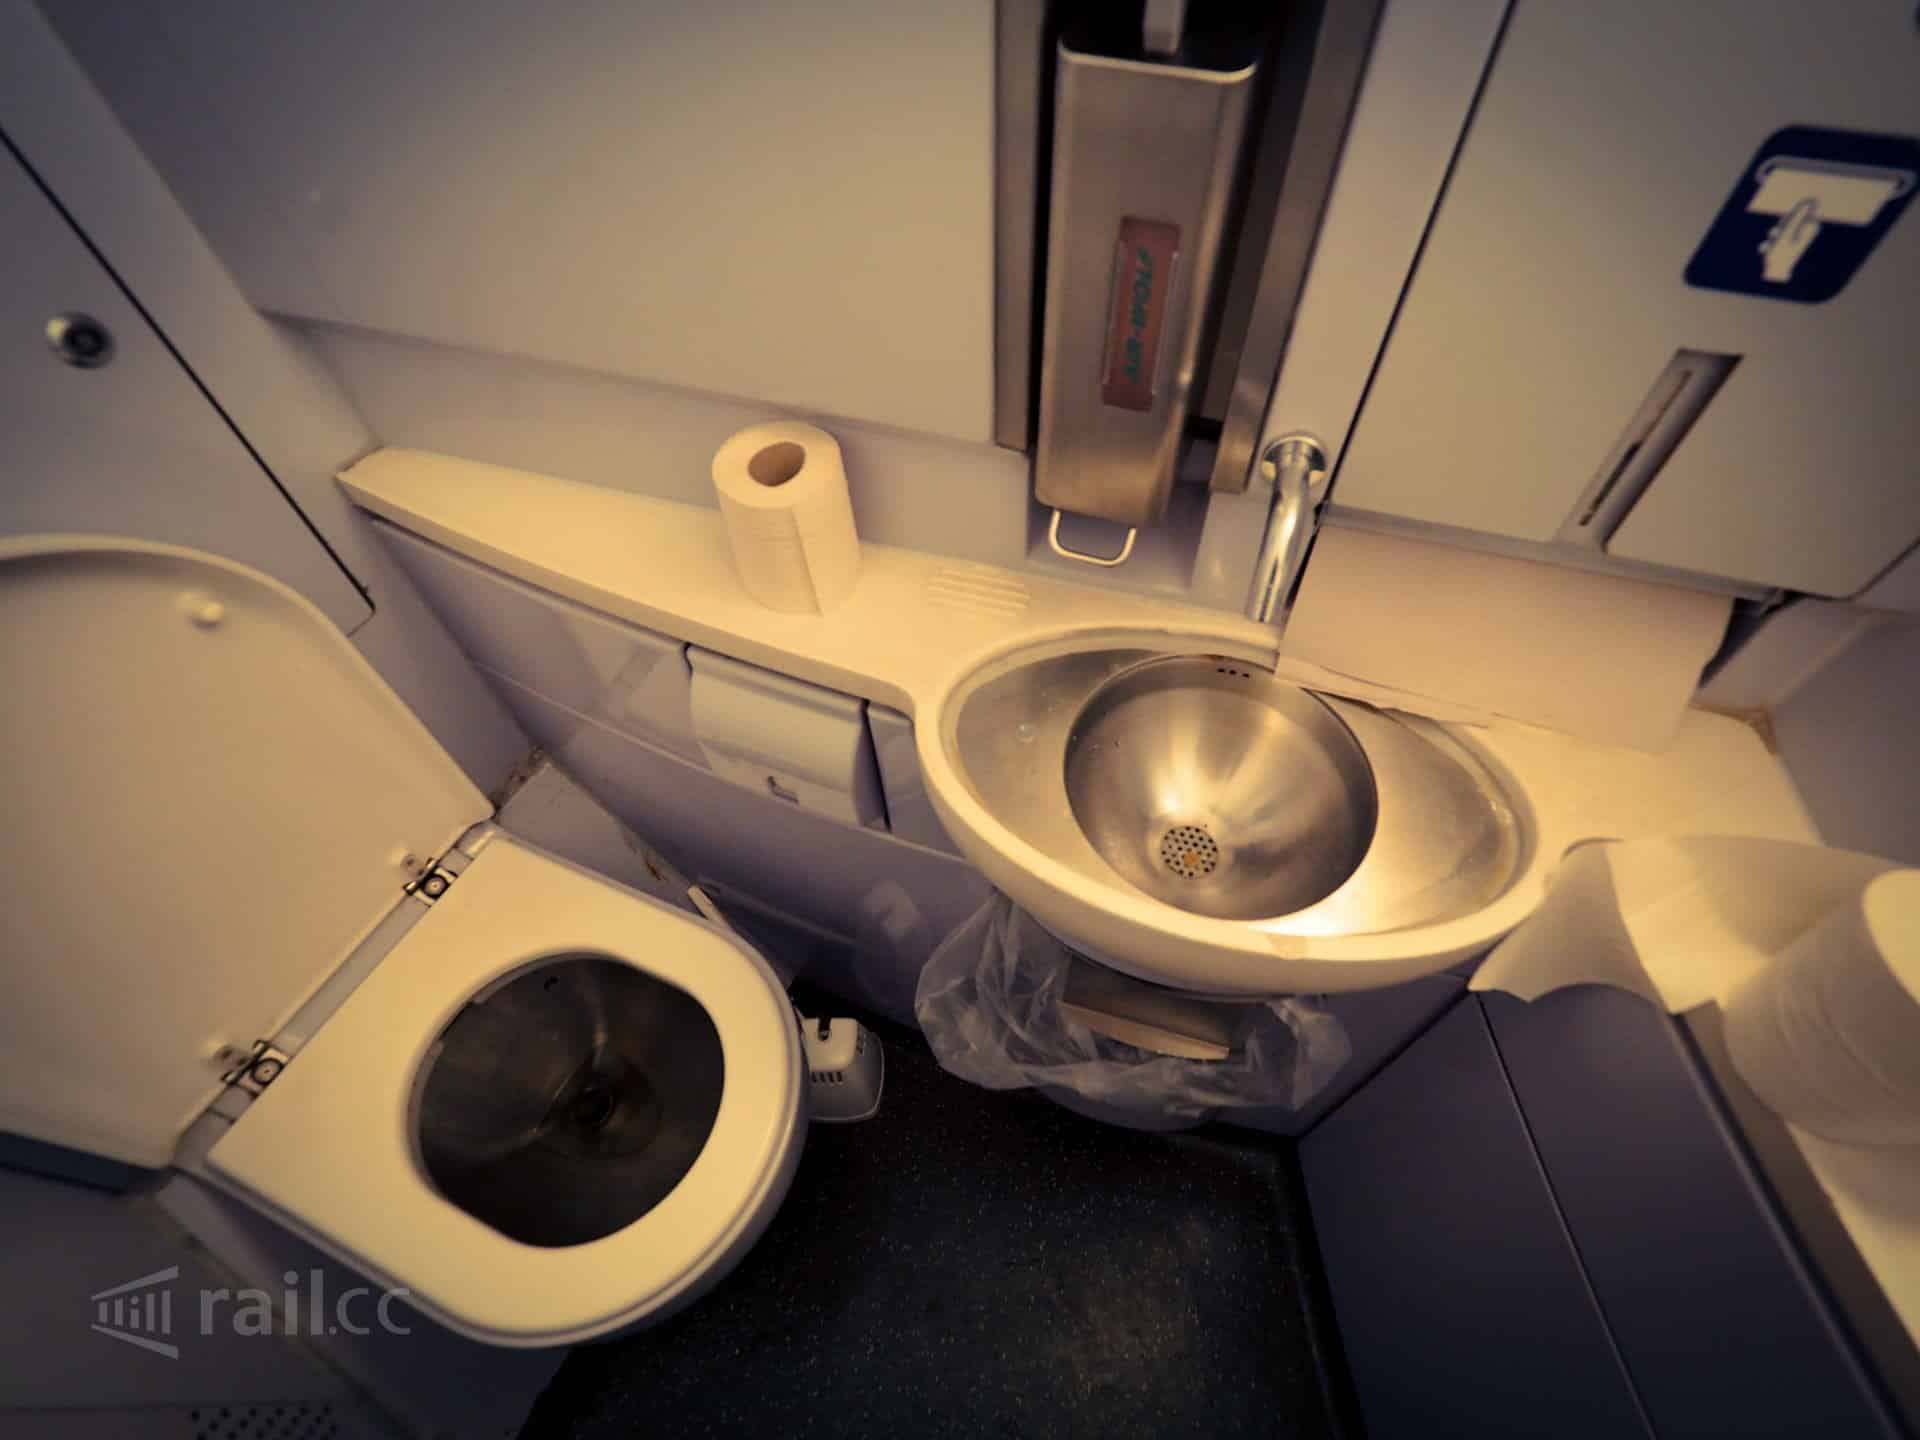 Toilet in the Nightjet sleeper